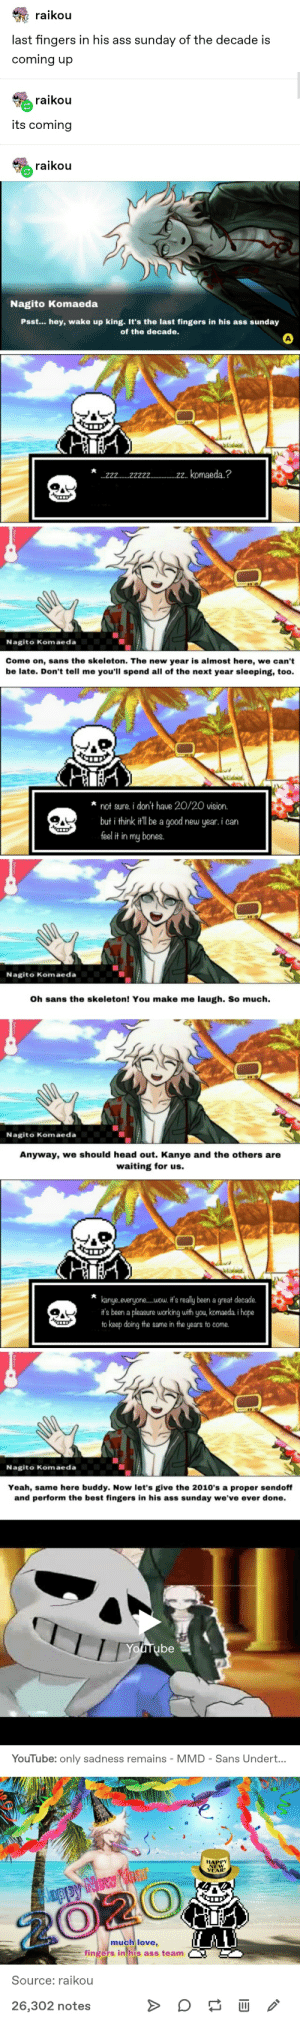 """The Last Fingers in his Ass Sunday of the Decade: raikou  last fingers in his ass sunday of the decade is  coming up  raikou  its coming  raikou  Nagito Komaeda  Psst... hey, wake up king. It's the last fingers in his ass sunday  of the decade.  """"2. komaeda.?  .222...2222....  Nagito Komaeda  Come on, sans the skeleton. The new year is almost here, we can't  be late. Don't tell me you'll spend all of the next year sleeping, too.  not sure. i don't have 20/20 vision.  but i think it'll be a good new year. i can  feel it in my bones.  Nagito Komaeda  Oh sans the skeleton! You make me laugh. So much.  Nagito Komaeda  Anyway, we should head out. Kanye and the others are  waiting for us.  kanye.everyone.wow. it's really been a great decade.  it's been a pleasure working with you, komaeda. i hope  to keep doing the same in the years to come.  Nagito Komaeda  Yeah, same here buddy. Now let's give the 2010's a proper sendoff  and perform the best fingers in his ass sunday we've ever done.  Youtube  YouTube: only sadness remains - MMD - Sans Undert...  HAPPY  NEW  YEAR!  Jappy New Yal  2020  much love,  fingers in his ass team  Source: raikou  26,302 notes The Last Fingers in his Ass Sunday of the Decade"""